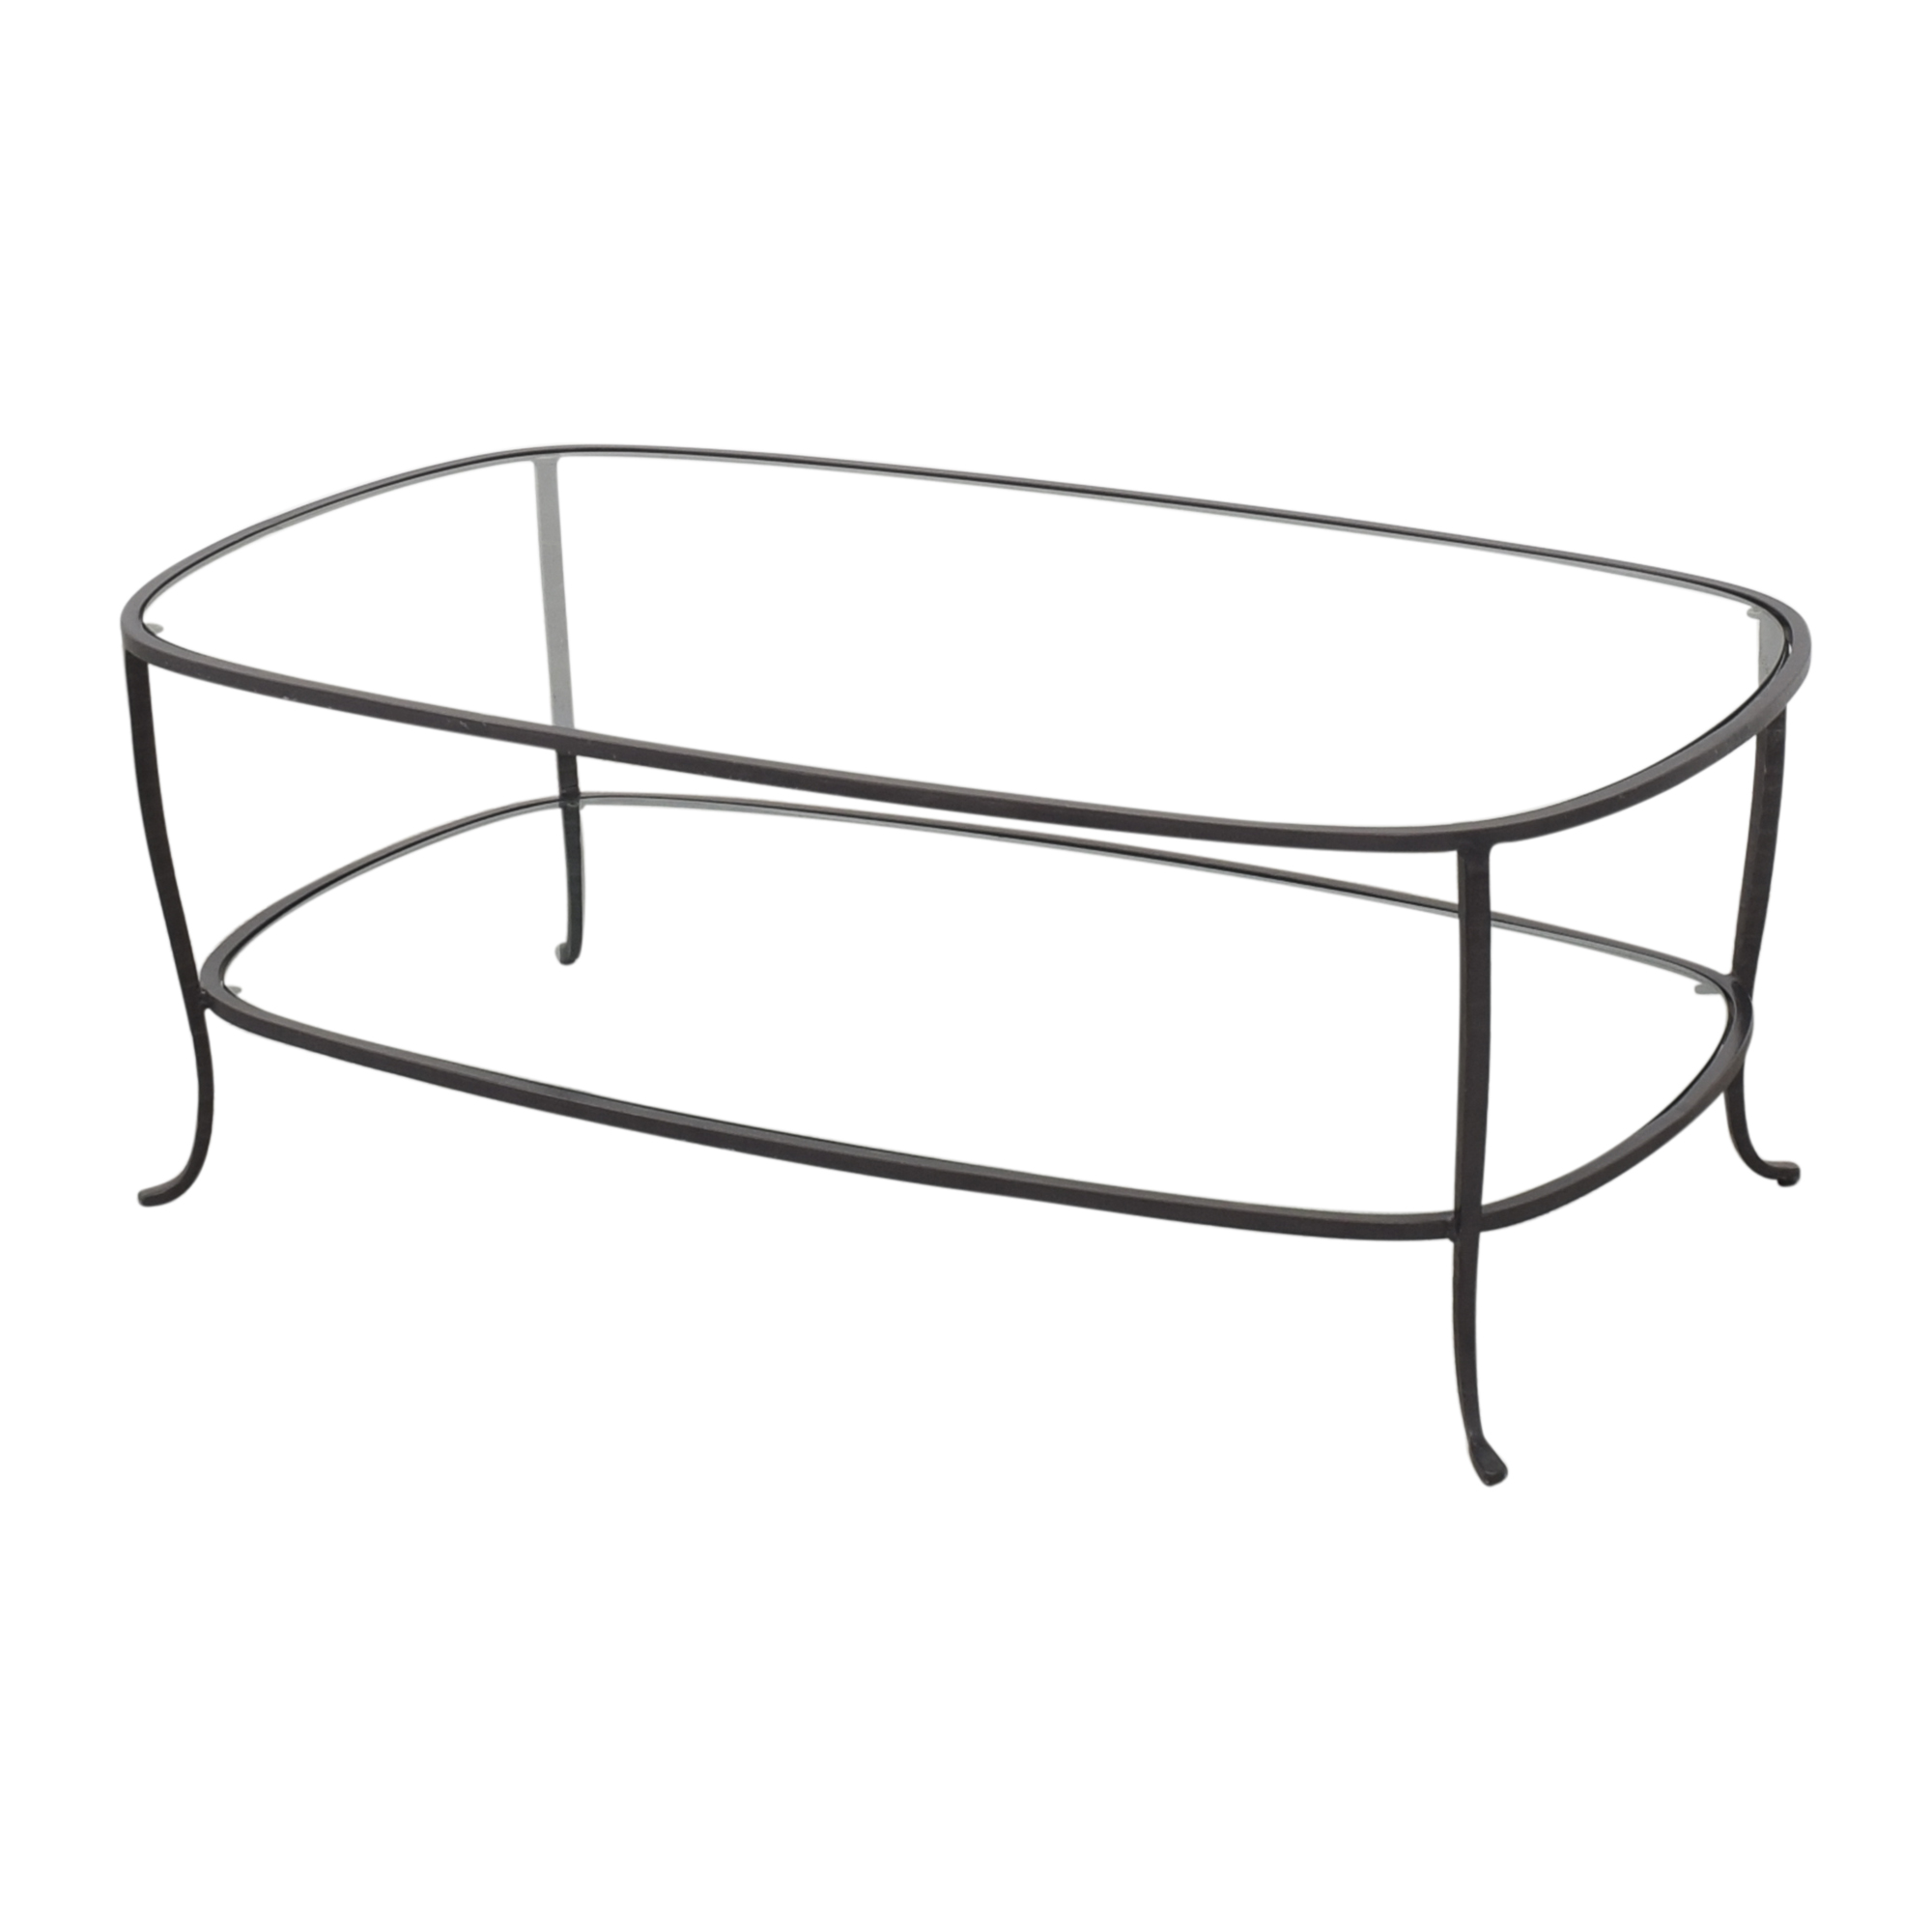 Pottery Barn Pottery Barn Oval Coffee Table nyc